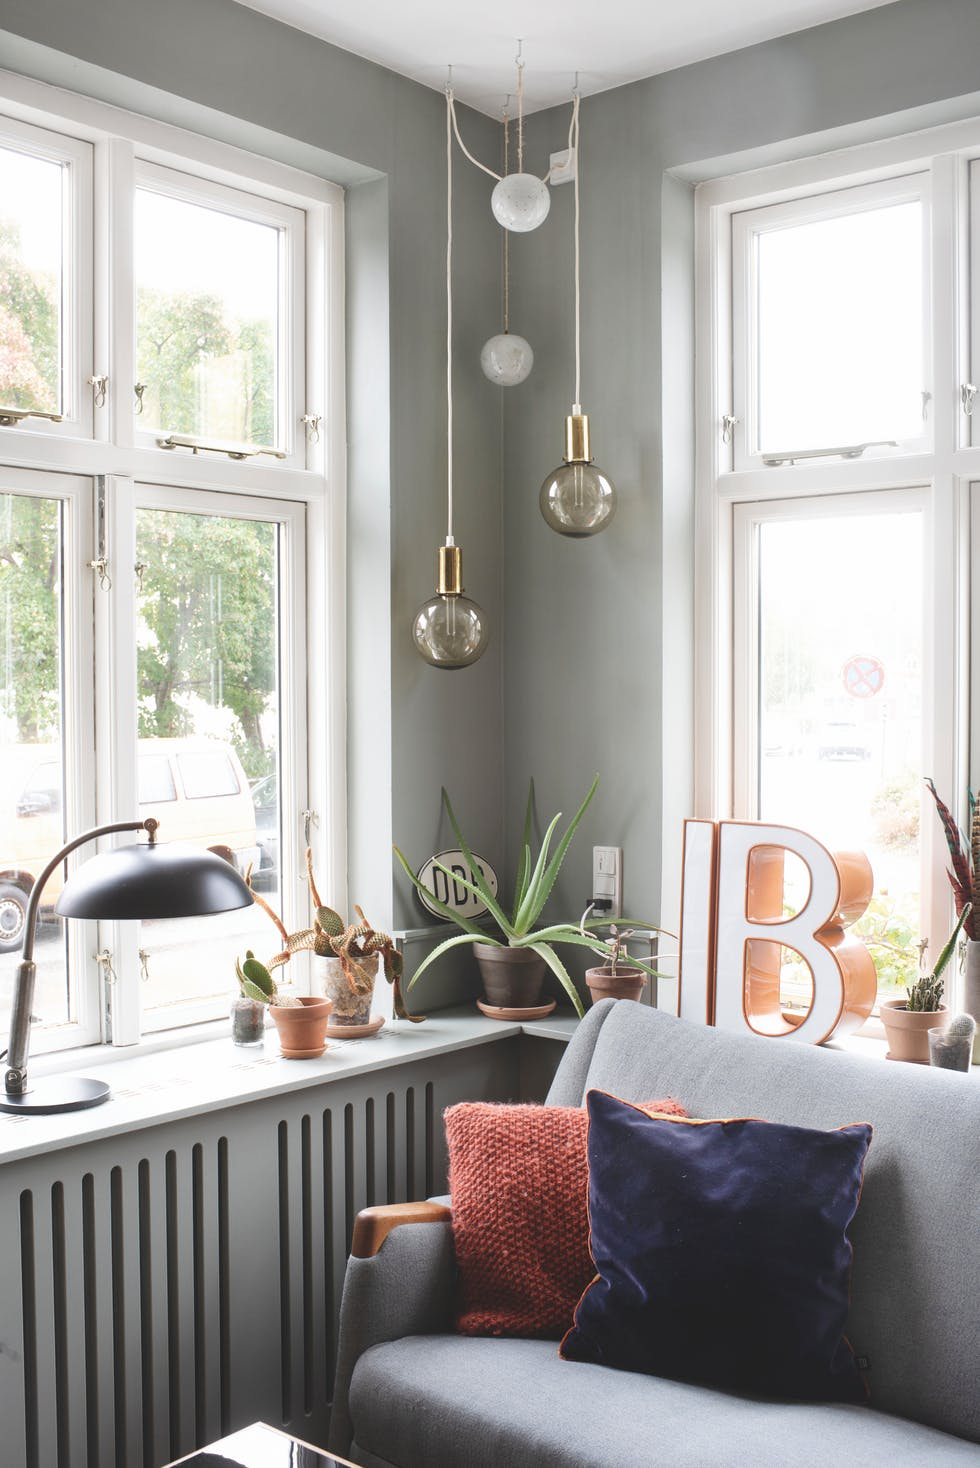 The Nordroom - A Colorful Vintage Home in Denmark